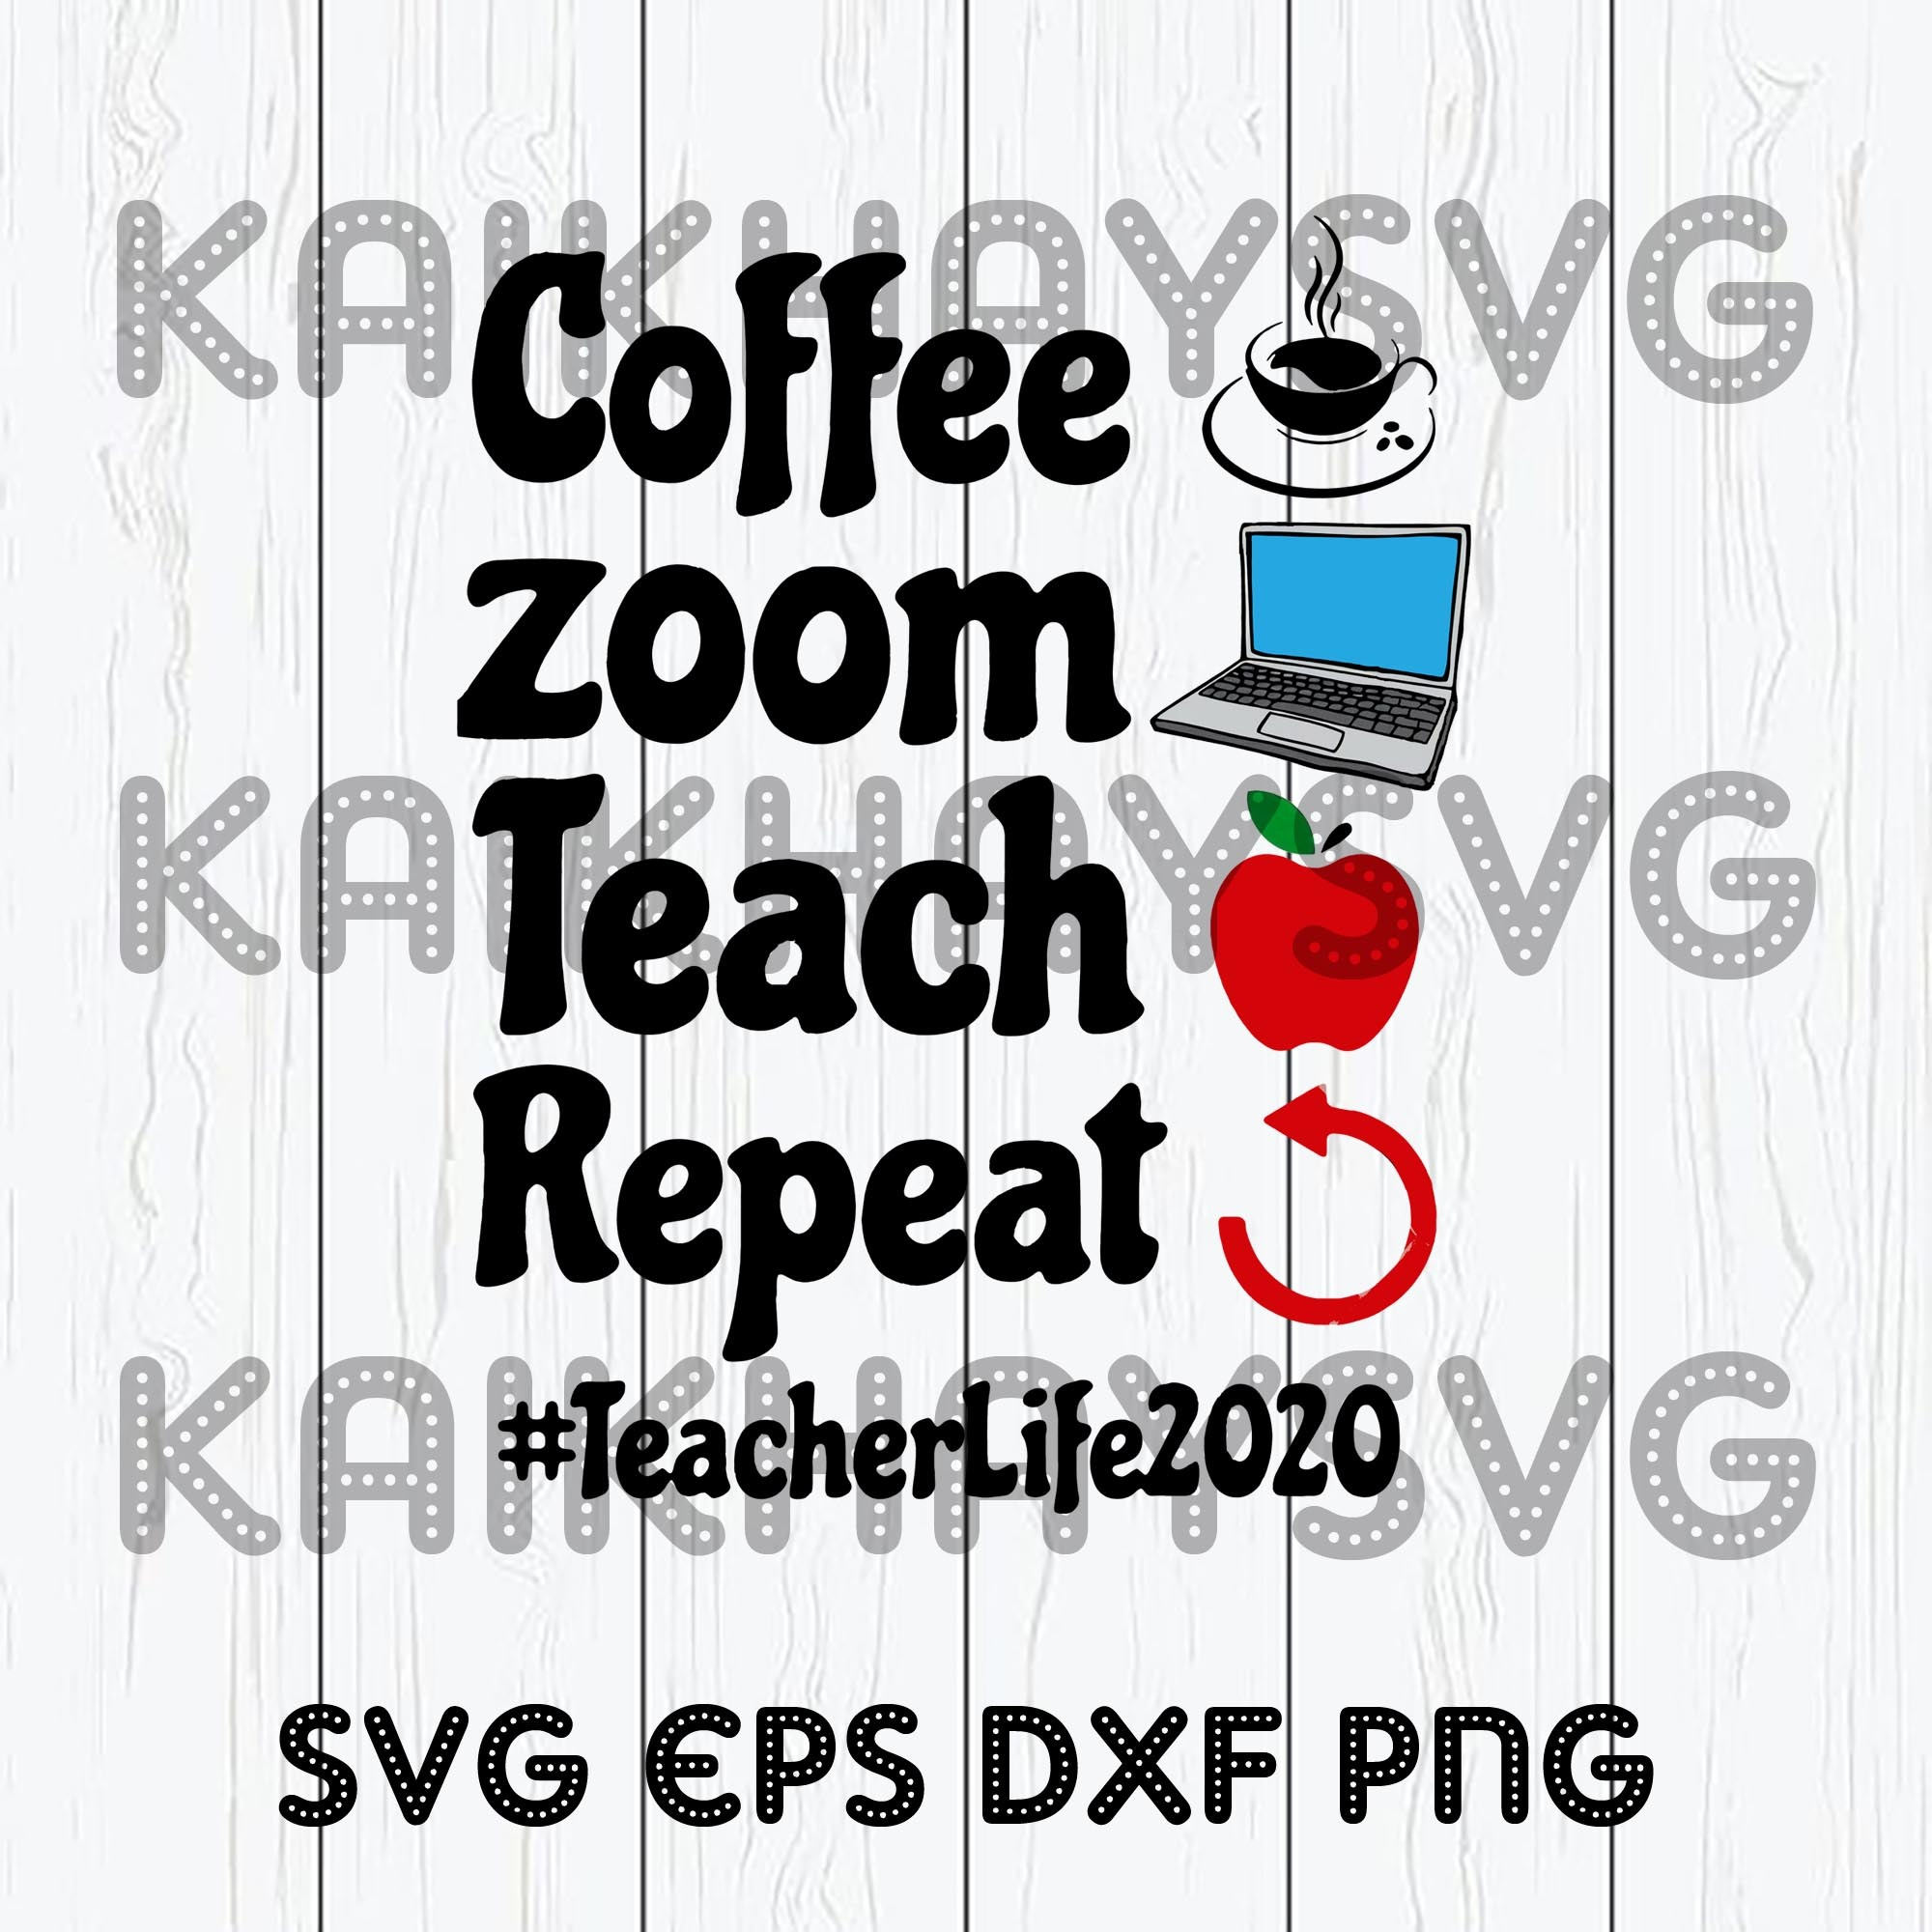 Coffee Zoom Teach Repeat Teacher Life 2020 By Kaikhaystore On Zibbet